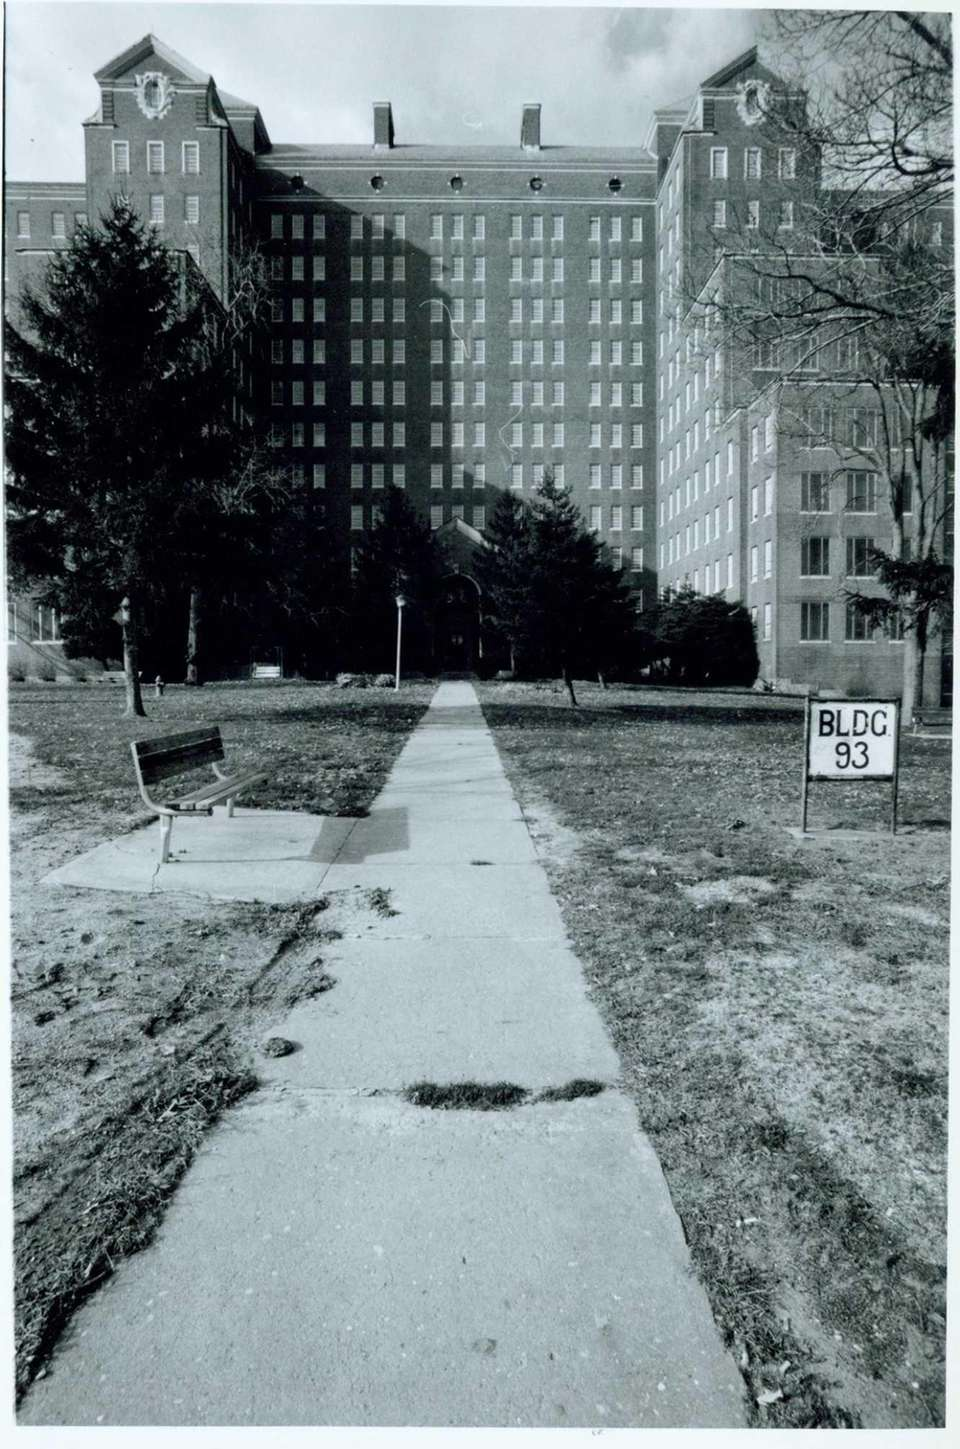 Then: This straight-on shot of Building 93 shows